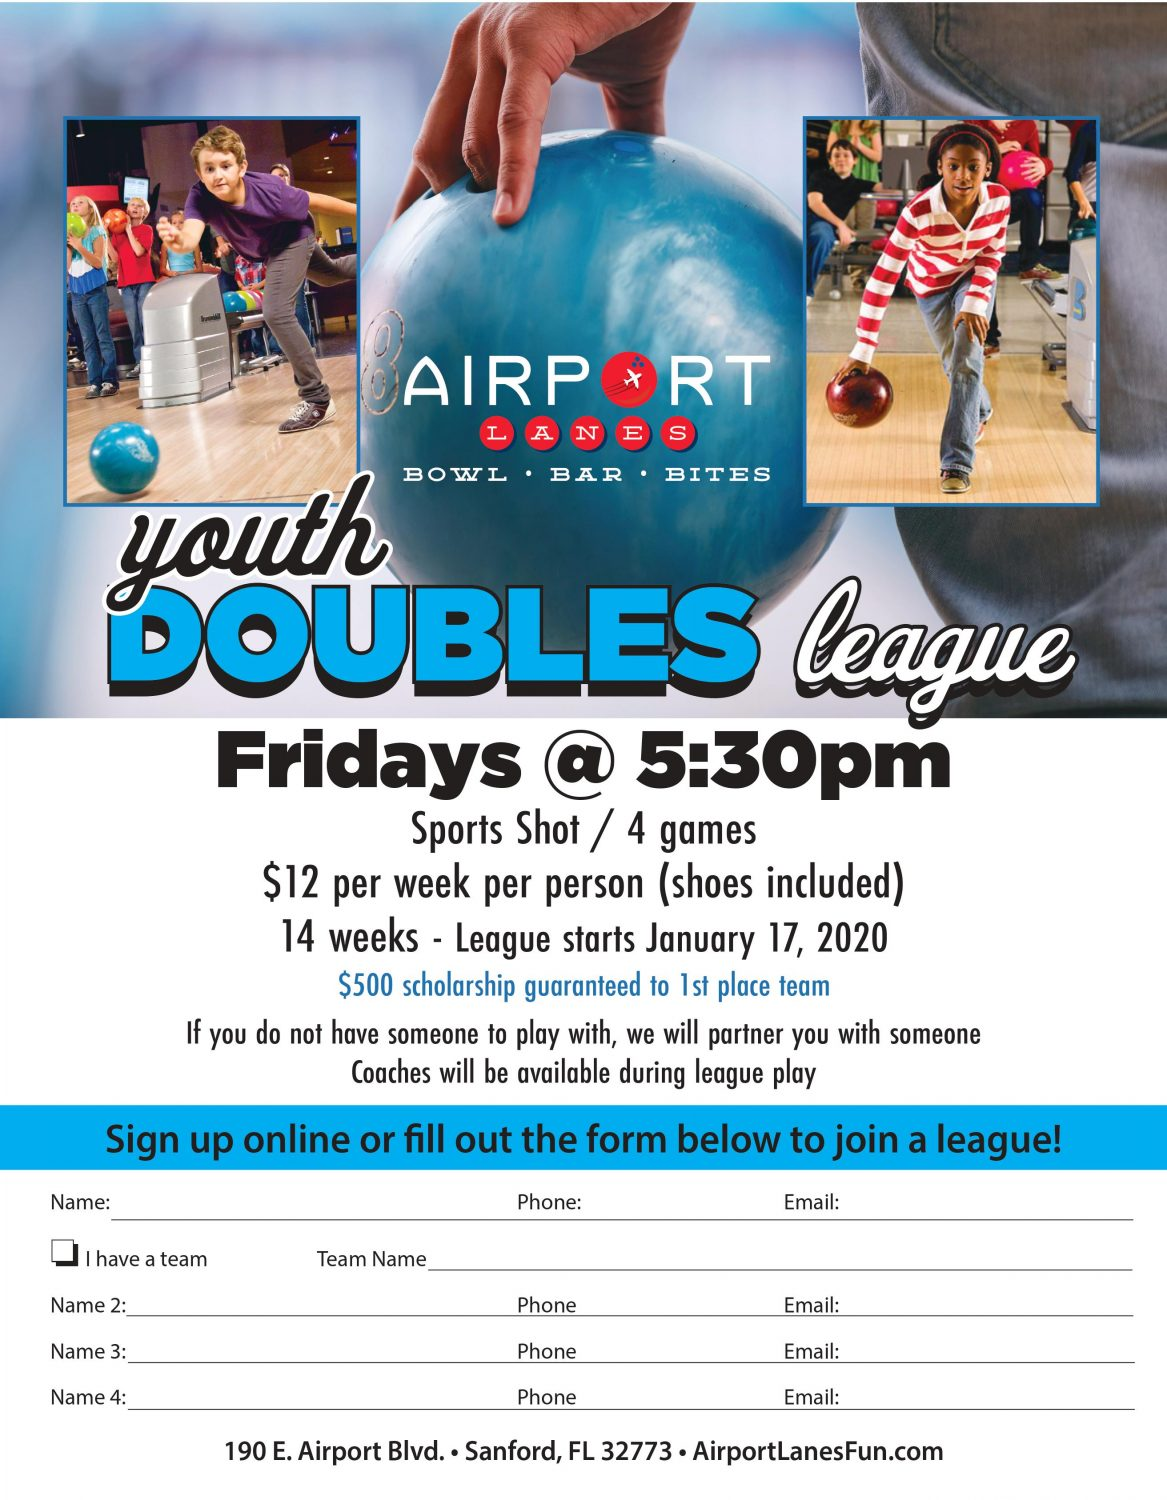 Youth Doubles League